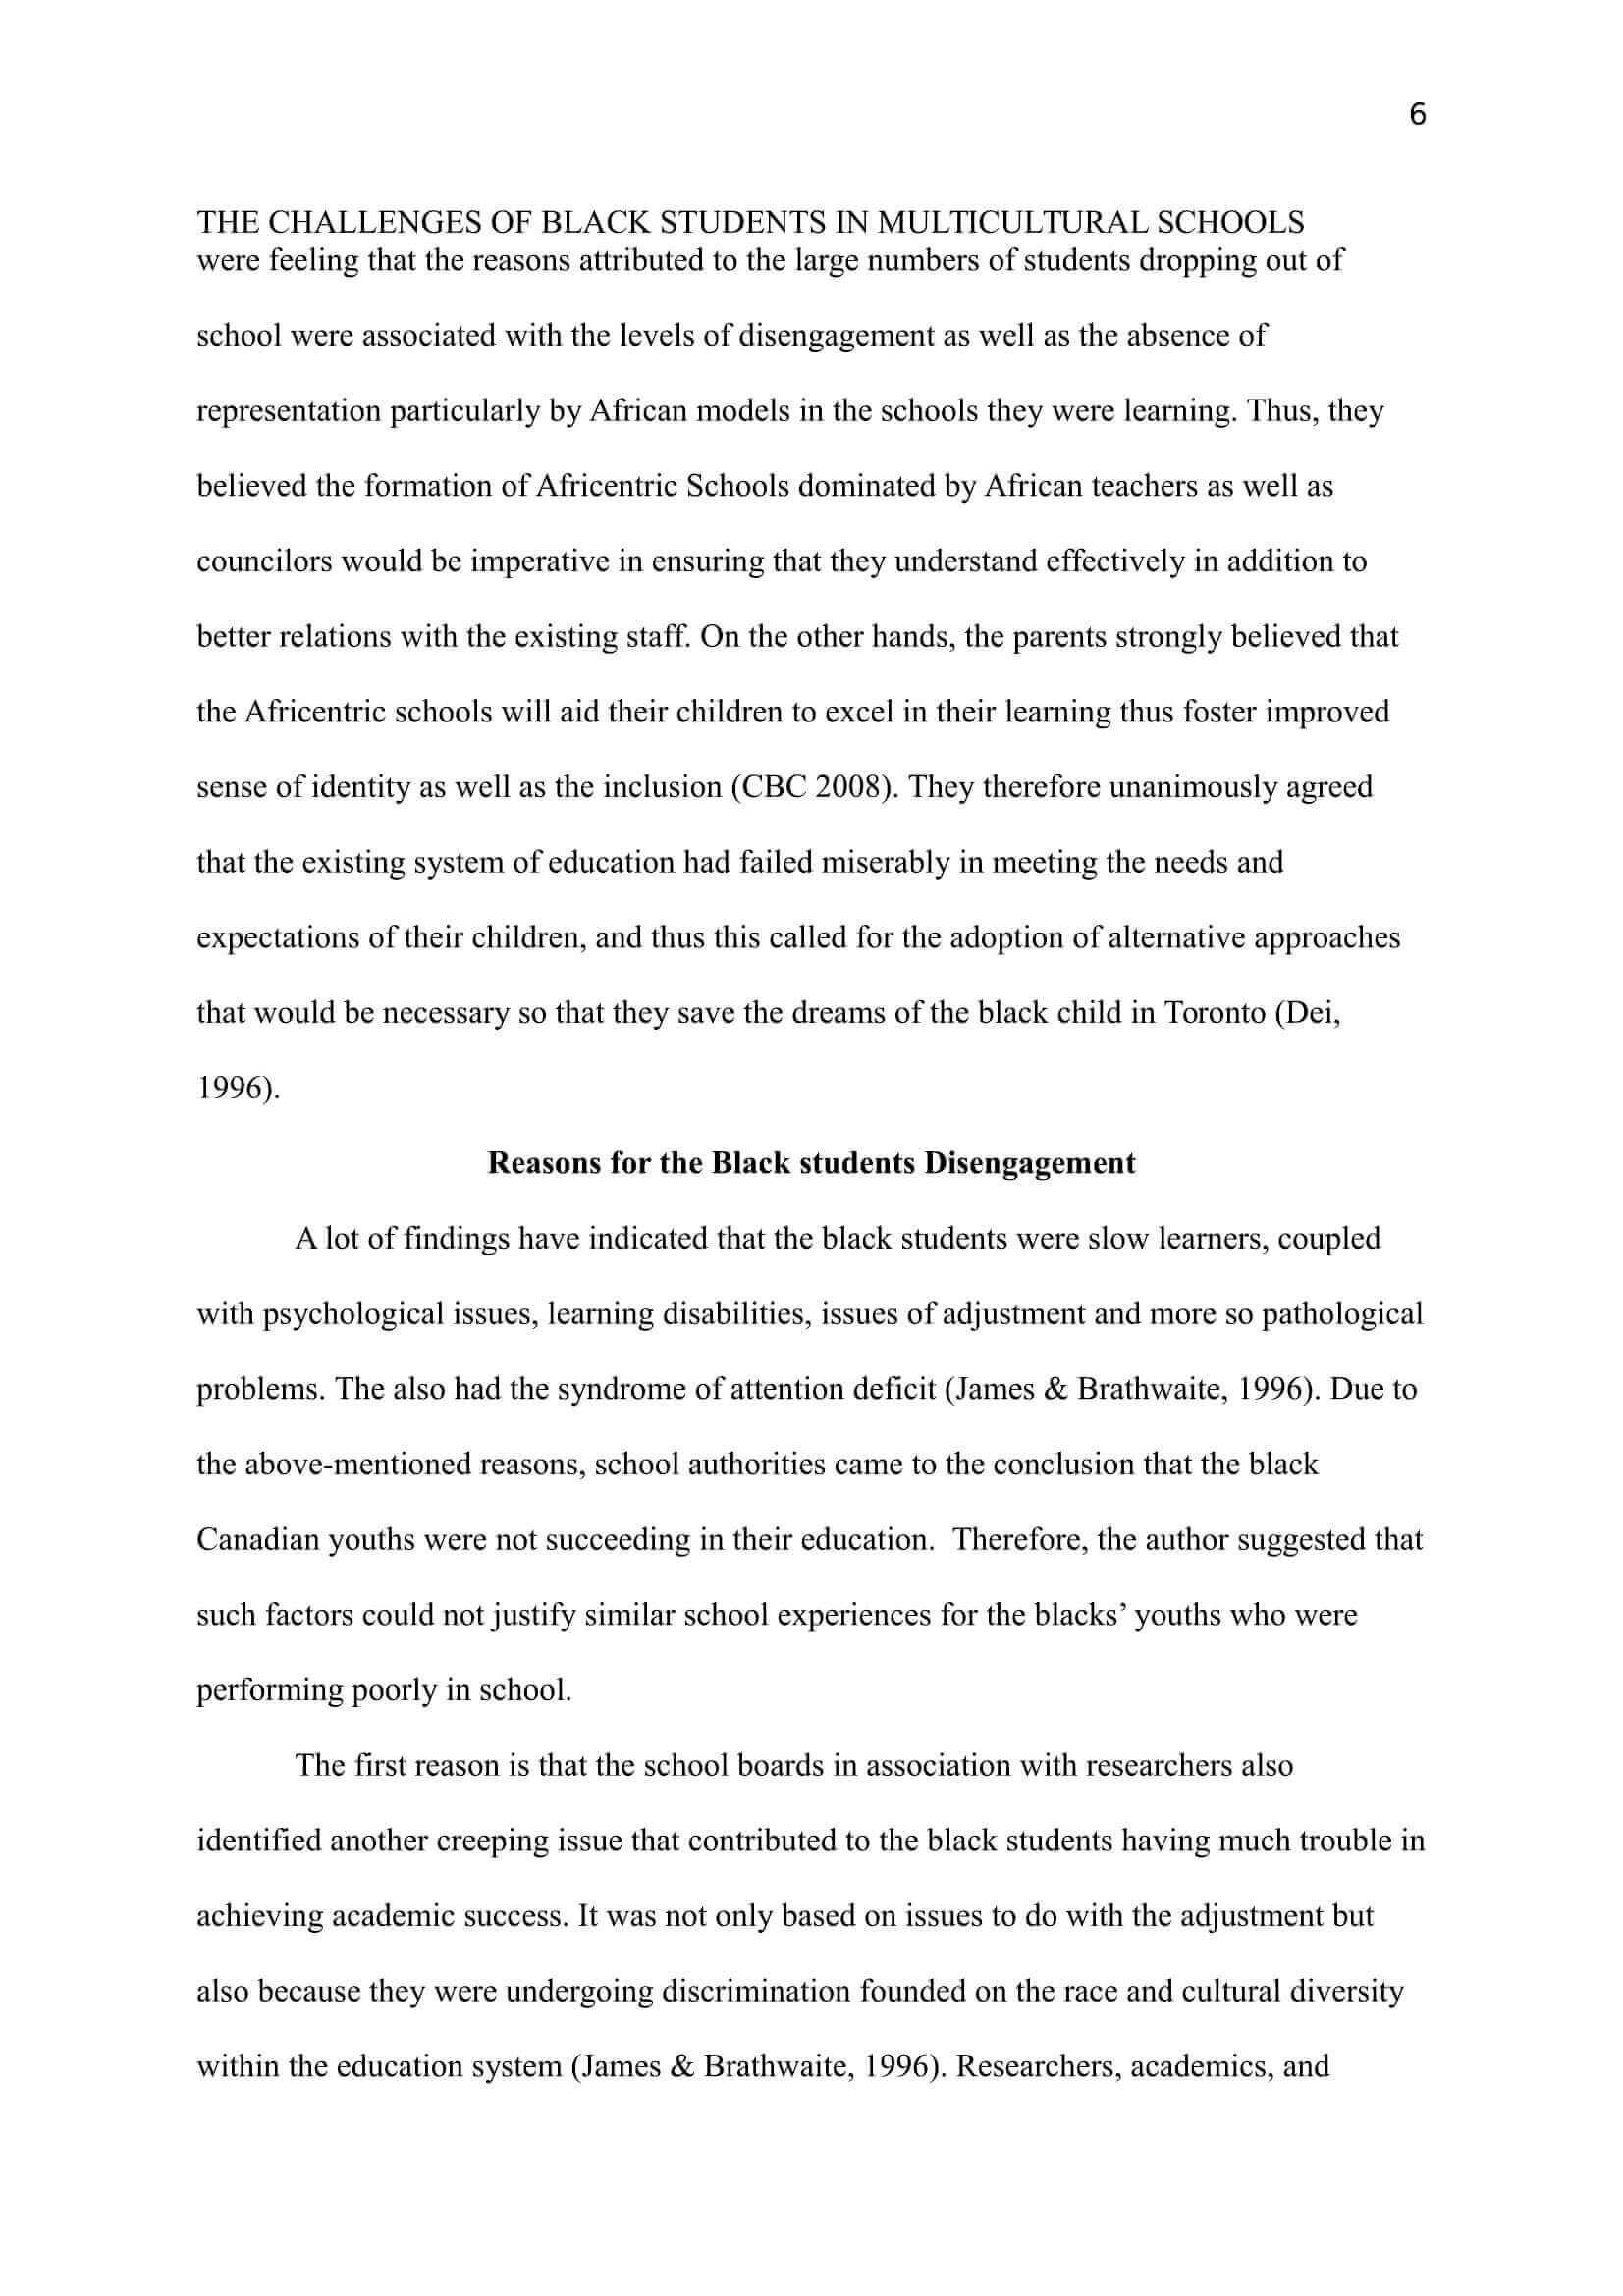 write my essay for me try online essay writing service typing  typing essays for students